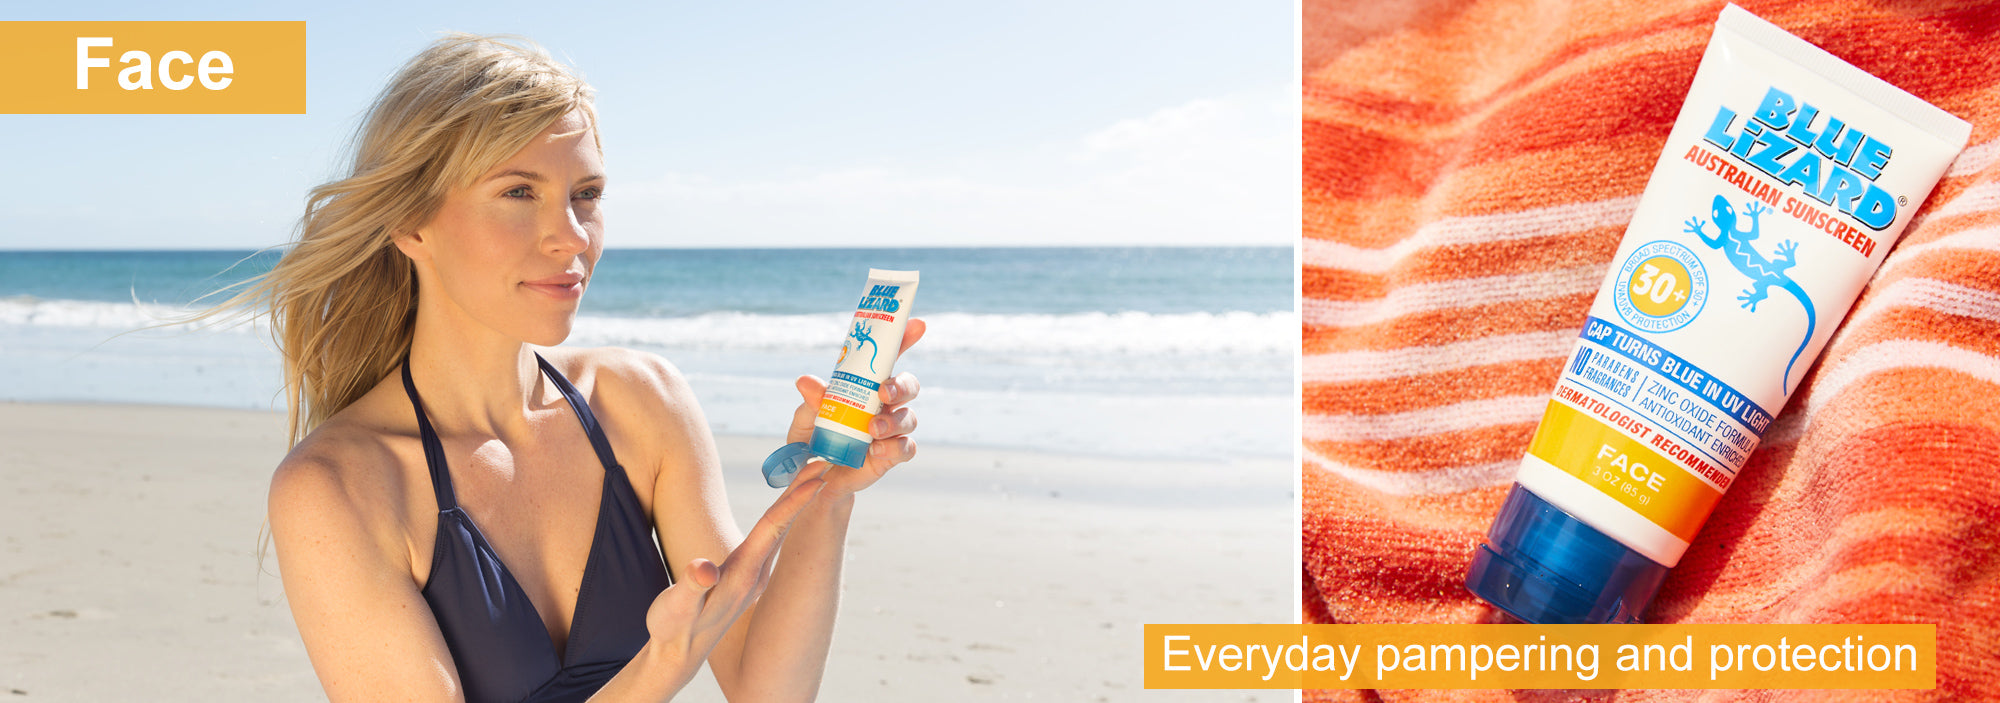 Face Sunscreen by Blue Lizard Australian Sunscreen - Everyday pampering and protection